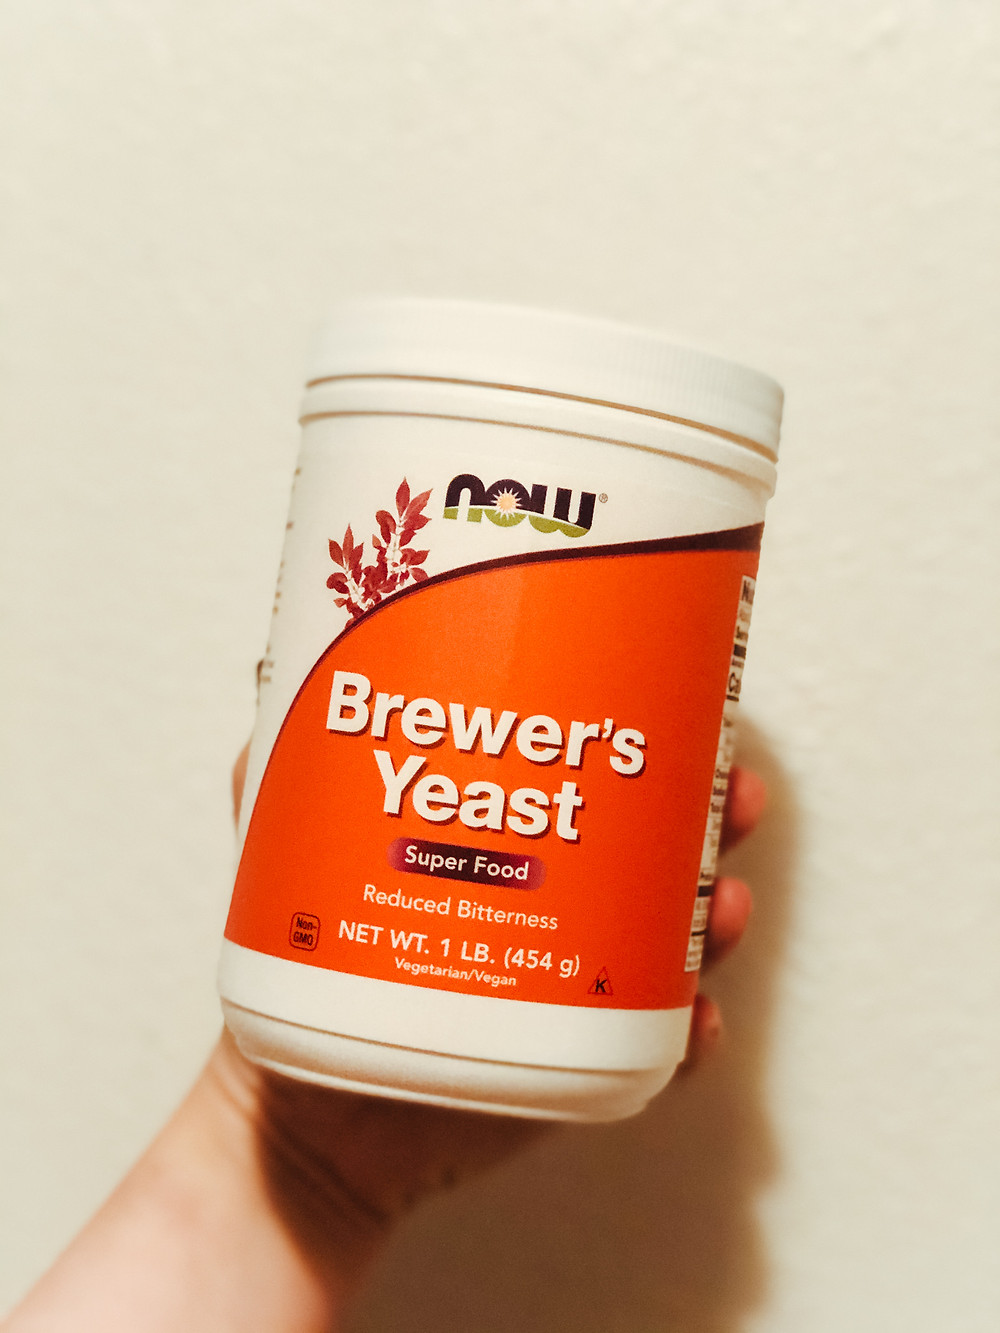 Brewer's Yeast (click here to find)